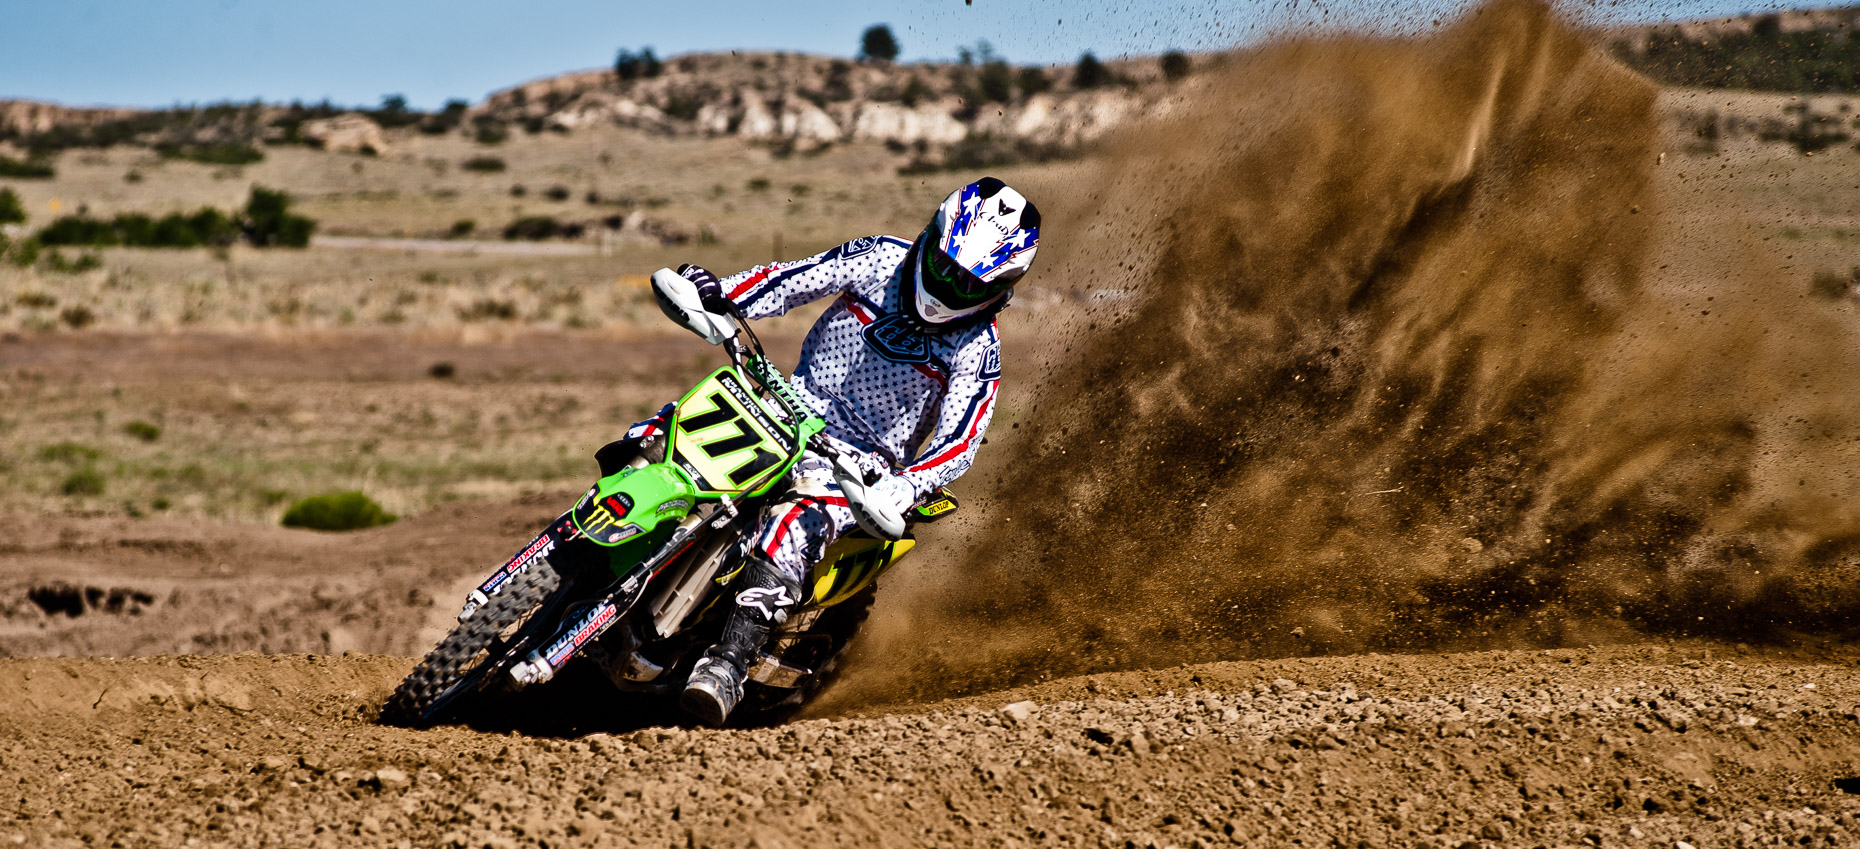 MotocrossSportsPhotos-1